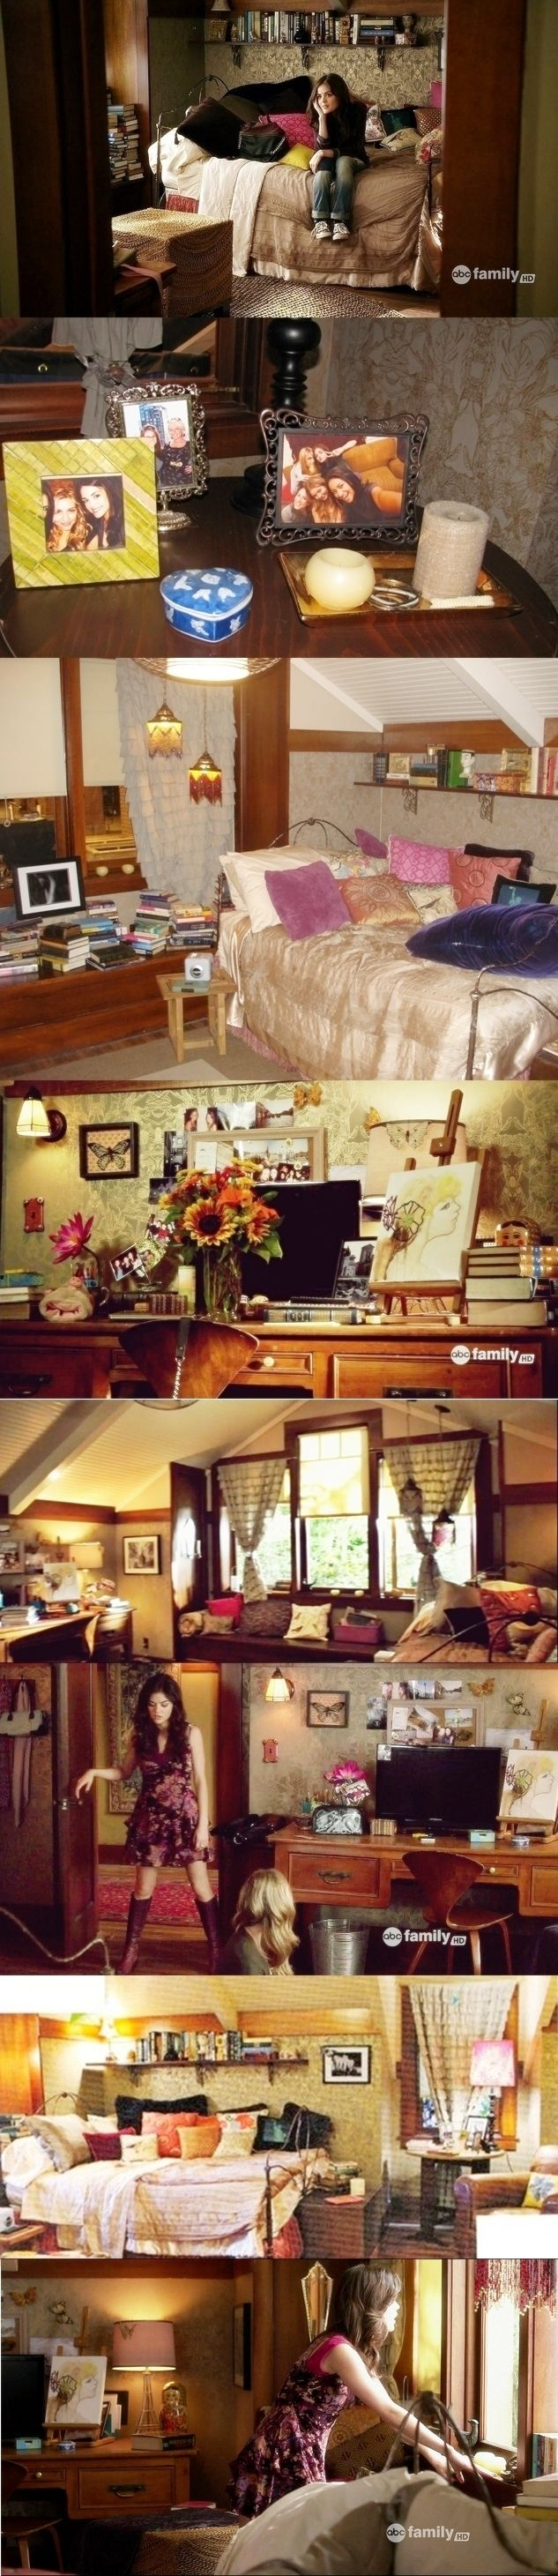 13 best spencer's bedroom images on pinterest